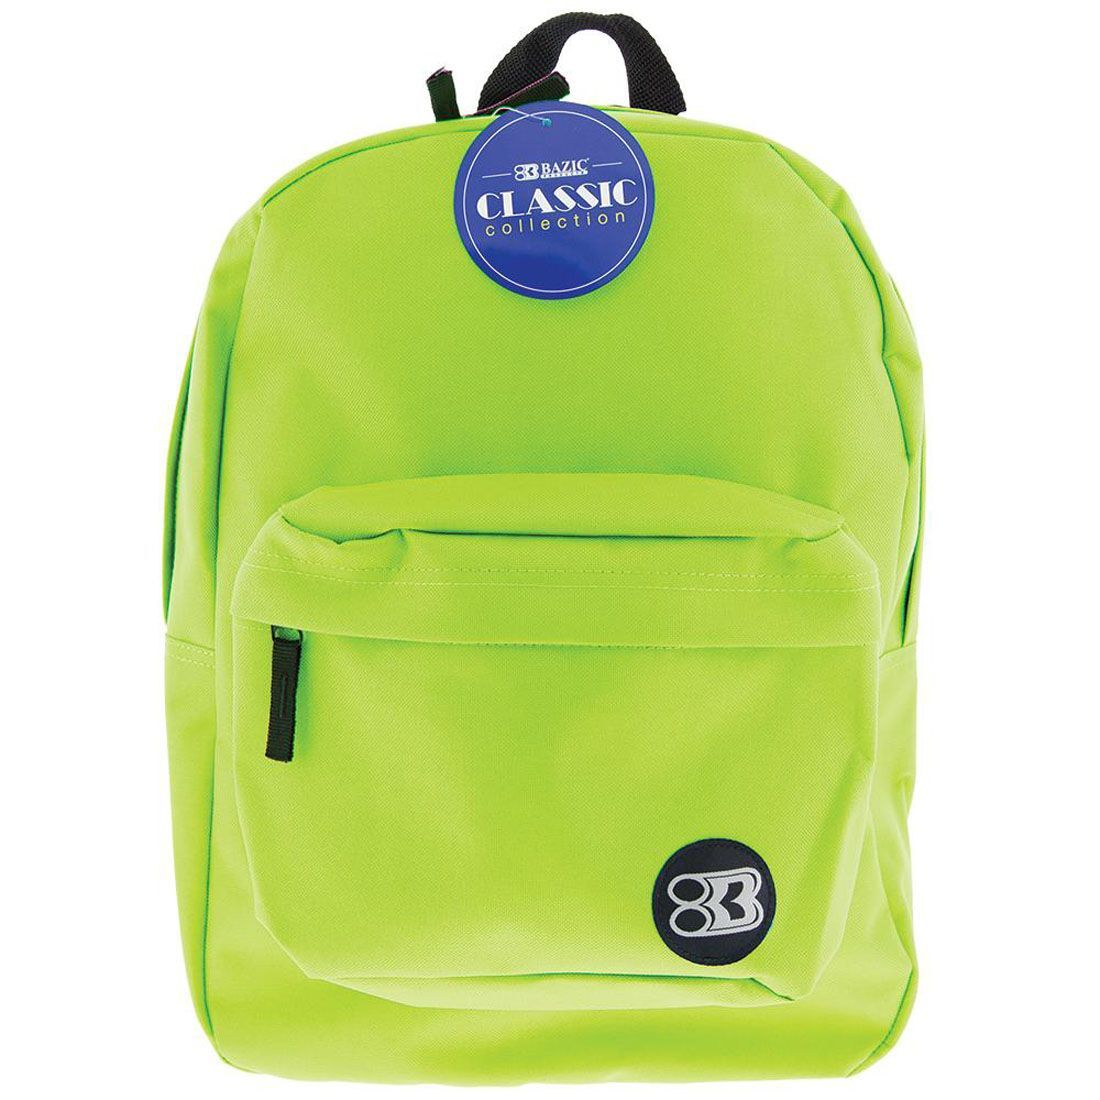 "BAZIC 17"" LIME GREEN CL BACKPACK"